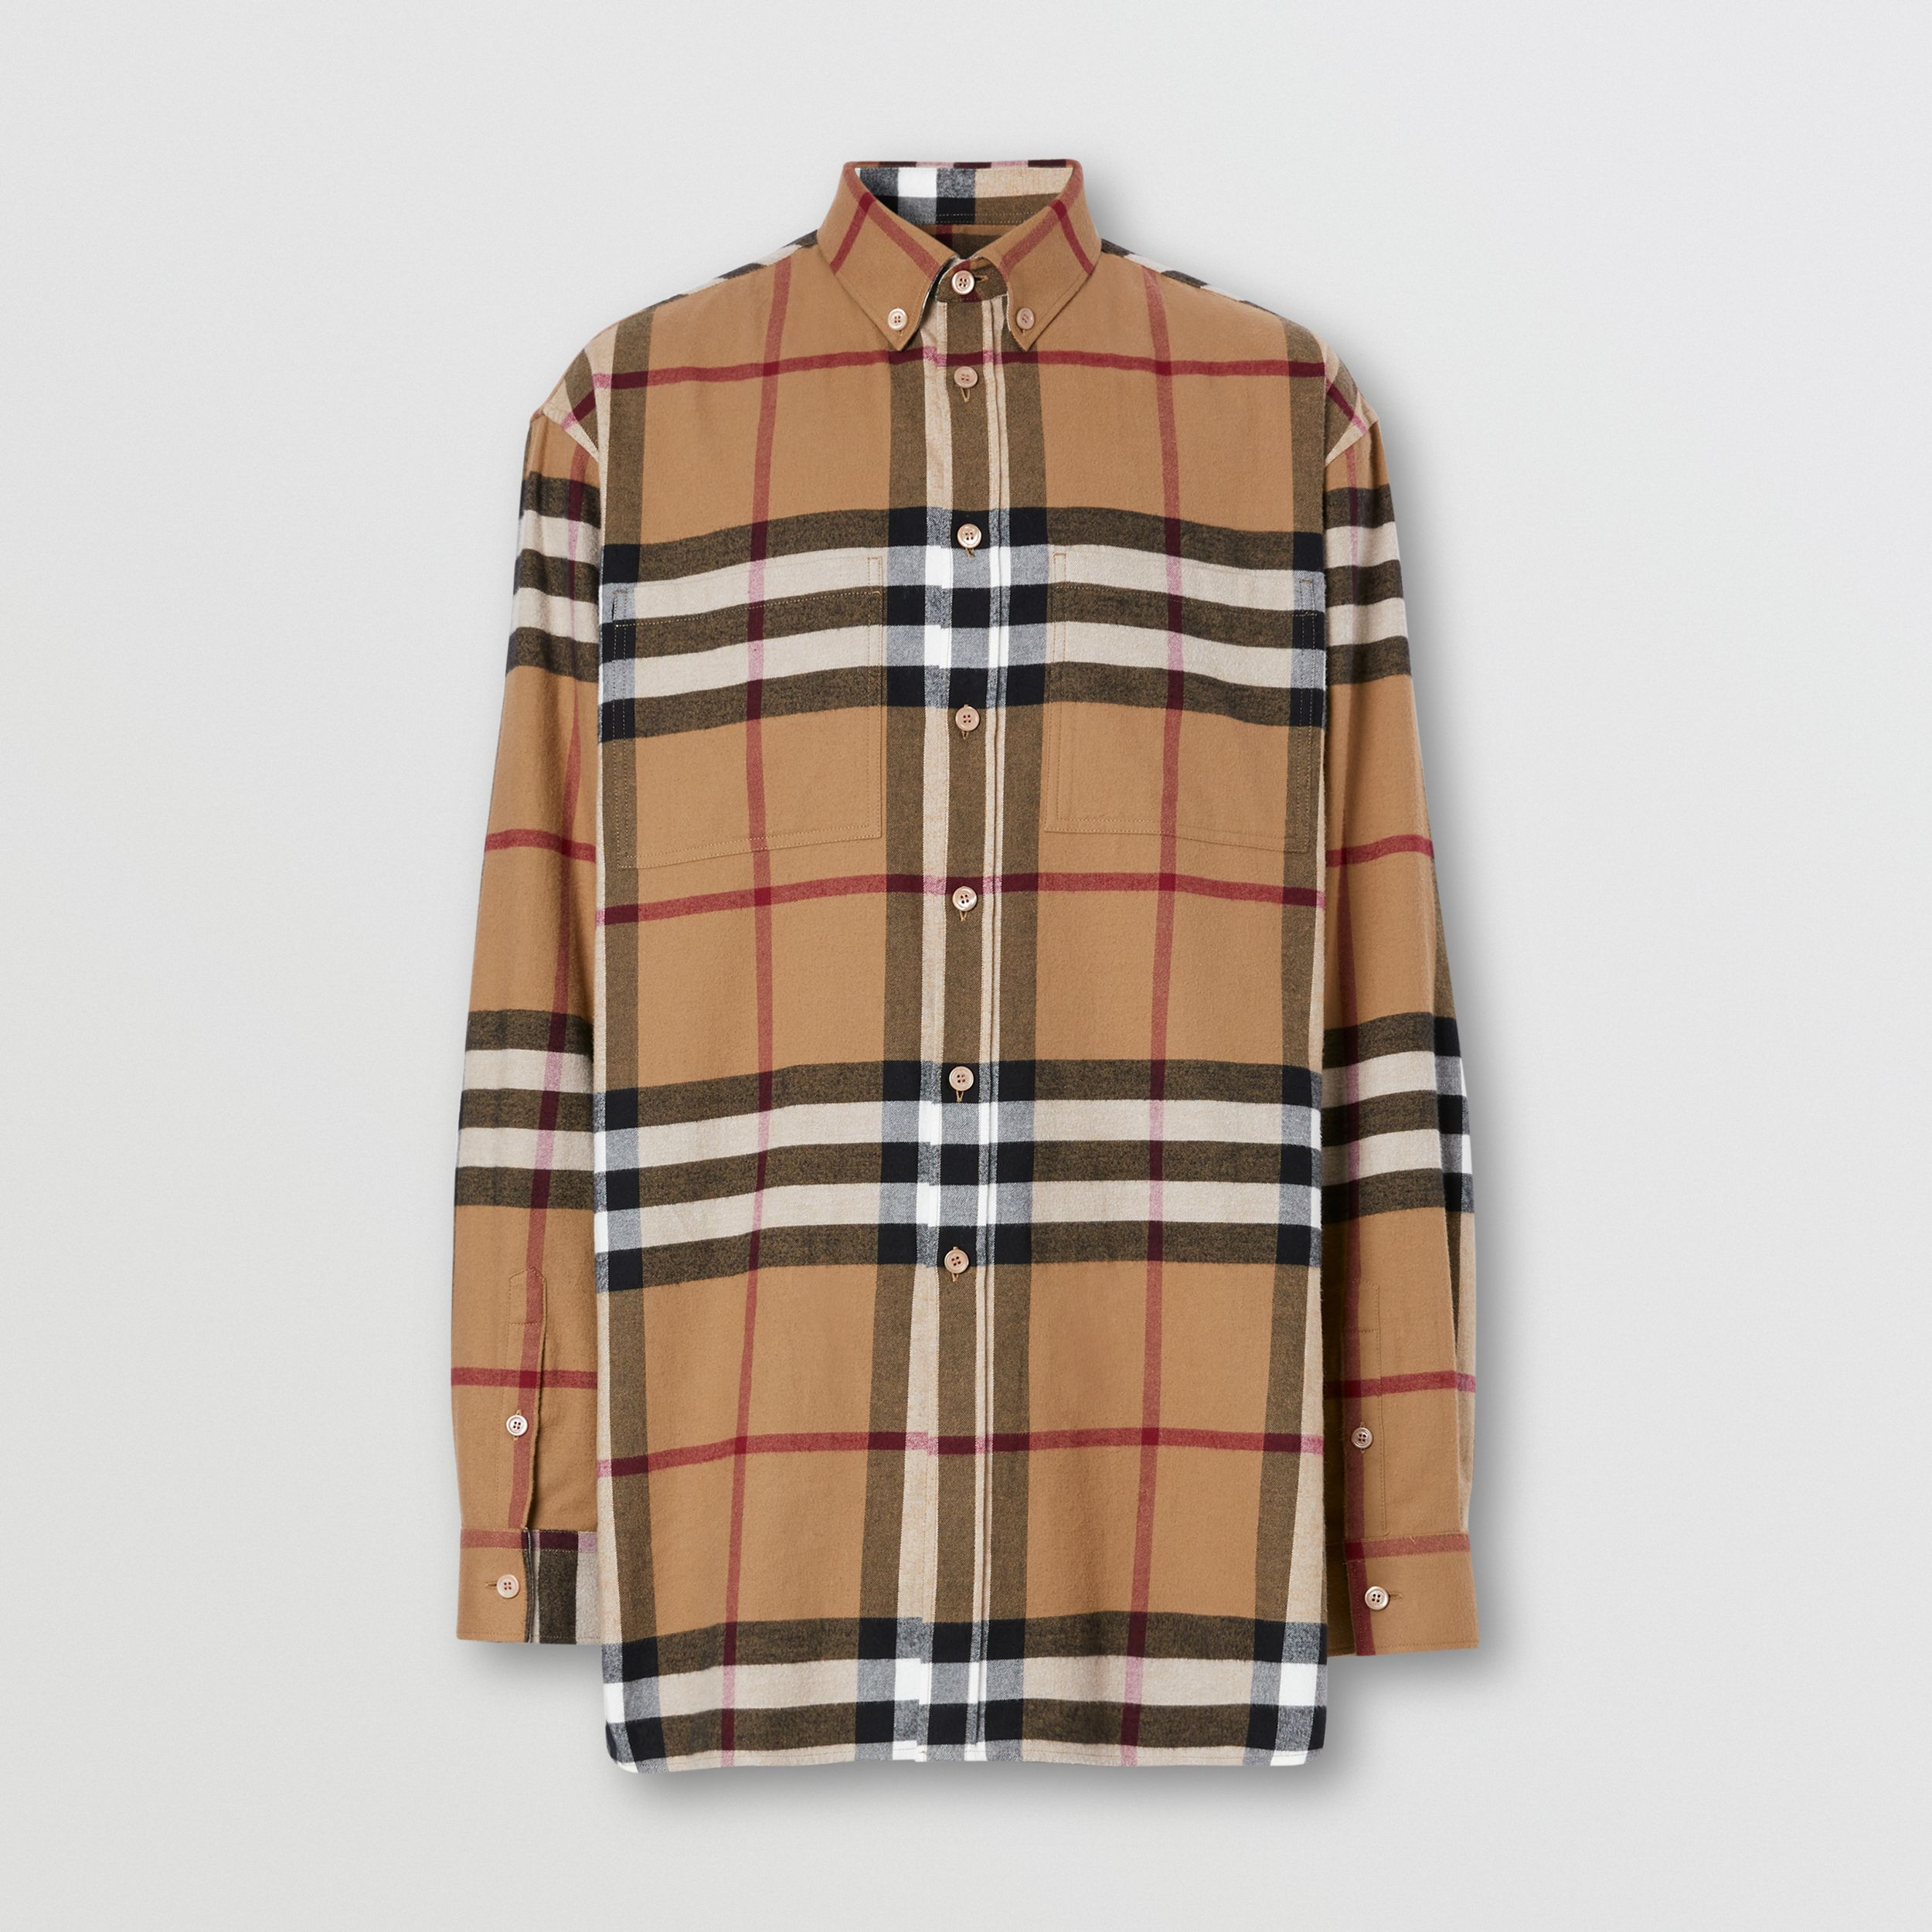 Relaxed Fit House Check Cotton Flannel Shirt in Birch Brown | Burberry Canada - 4